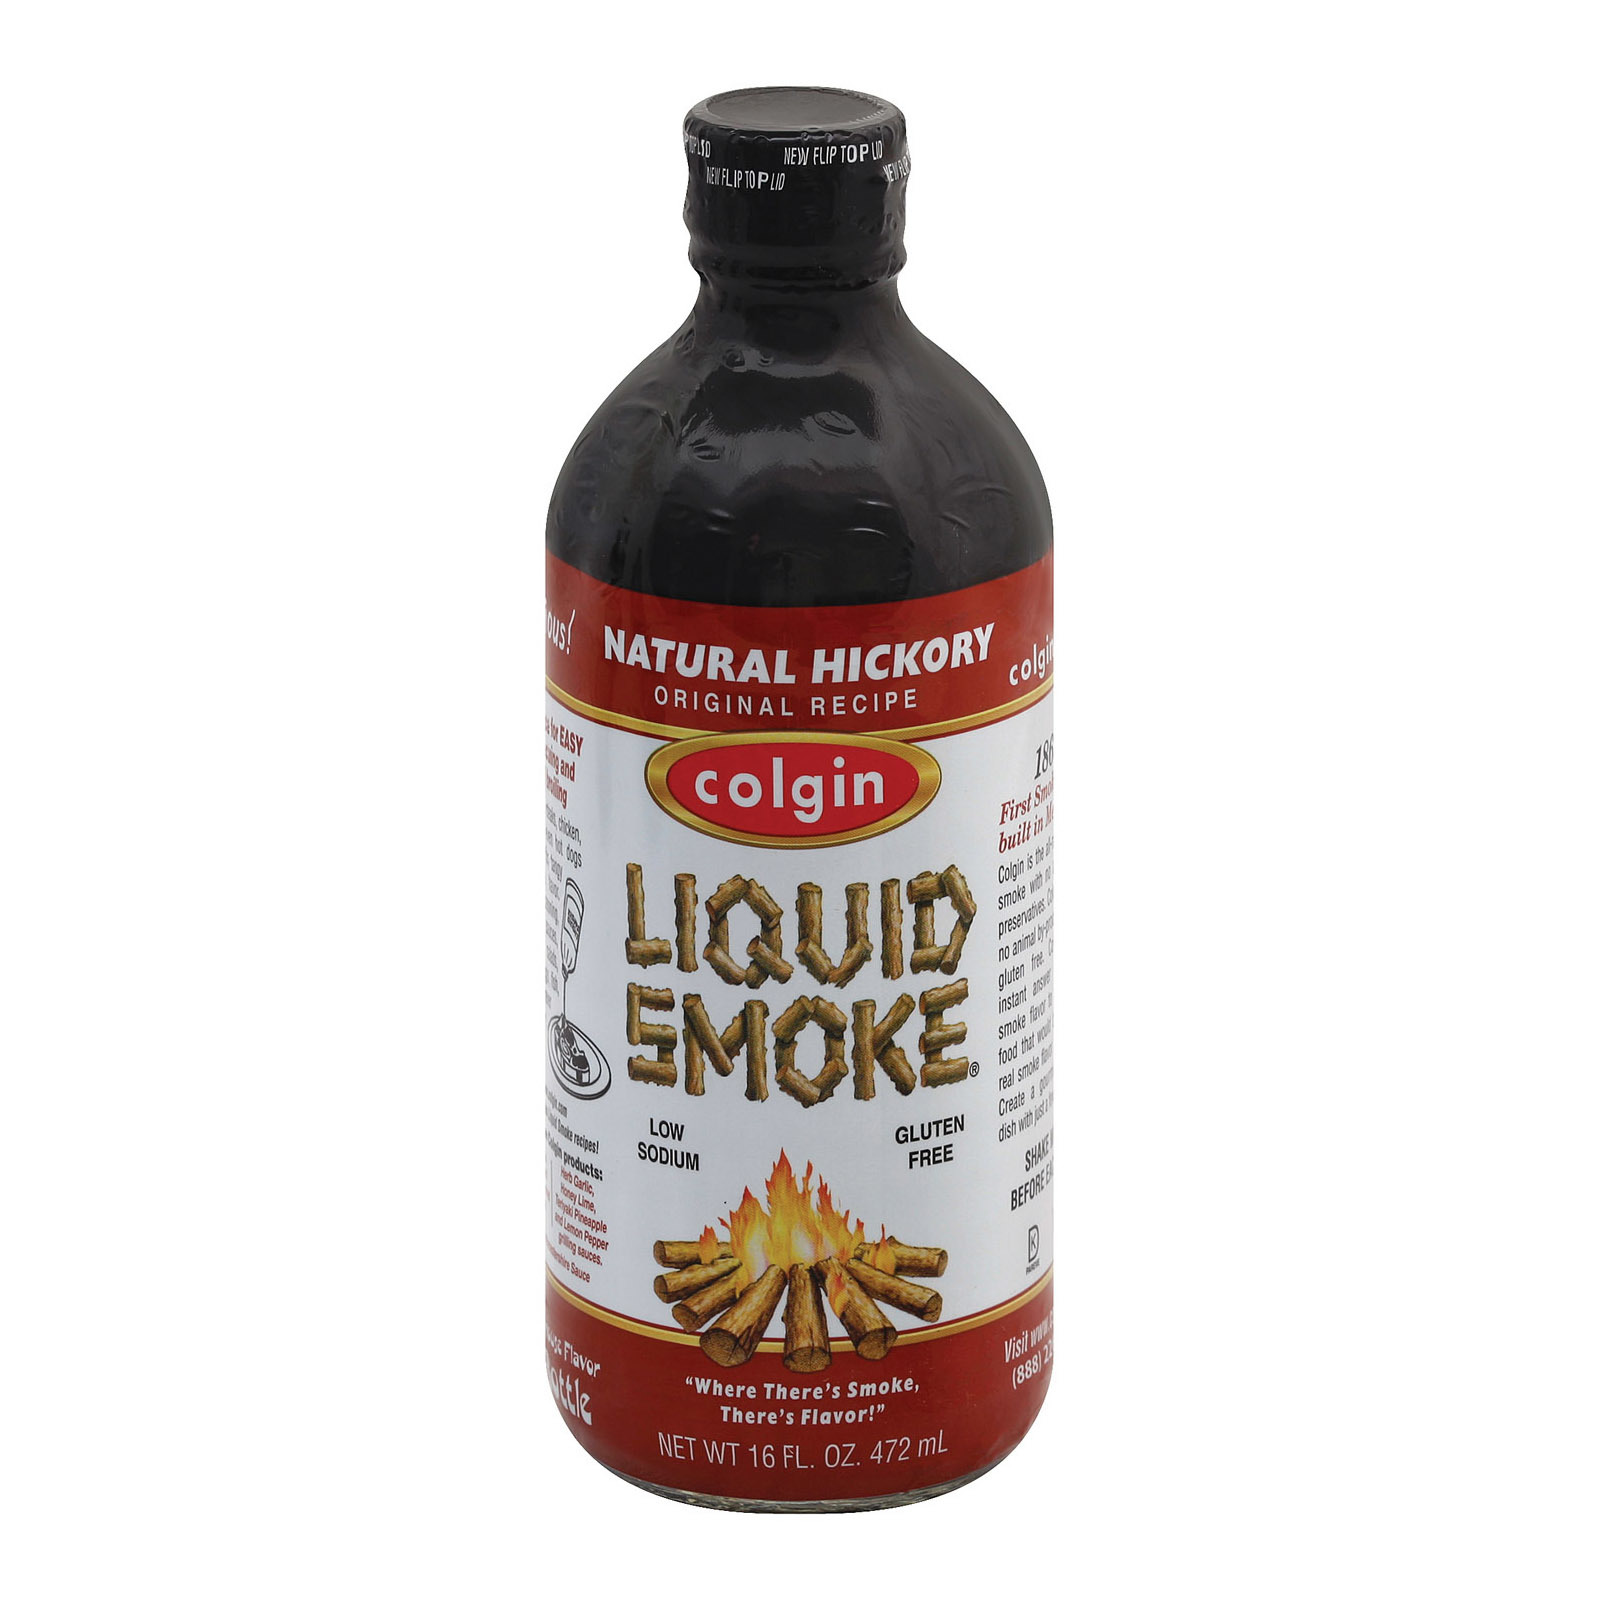 Colgin Liquid Smoke - Hickory - Case of 6 - 16 fl oz